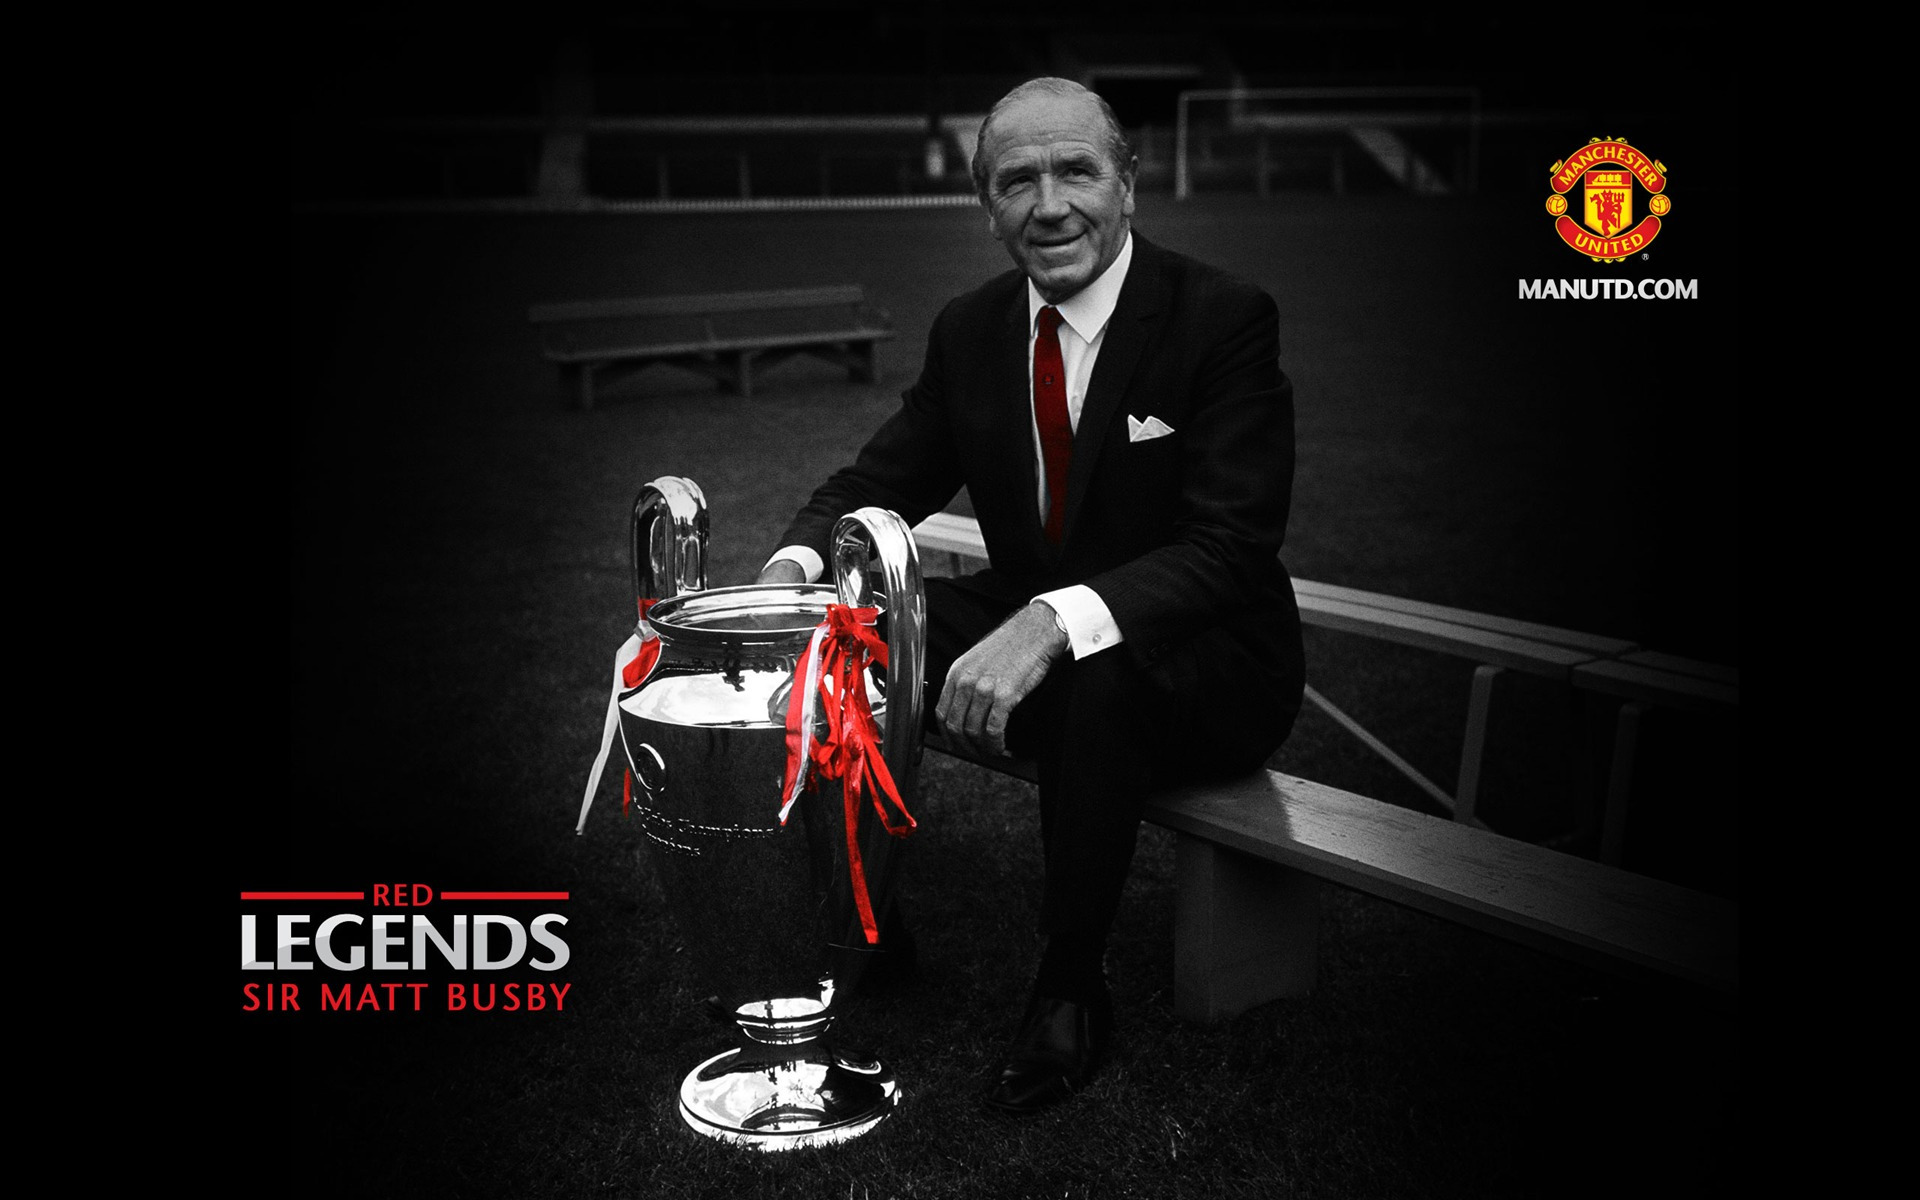 Go Get It Girl Laptop Wallpaper Sir Matt Red Legends Manchester United Mystery Wallpaper